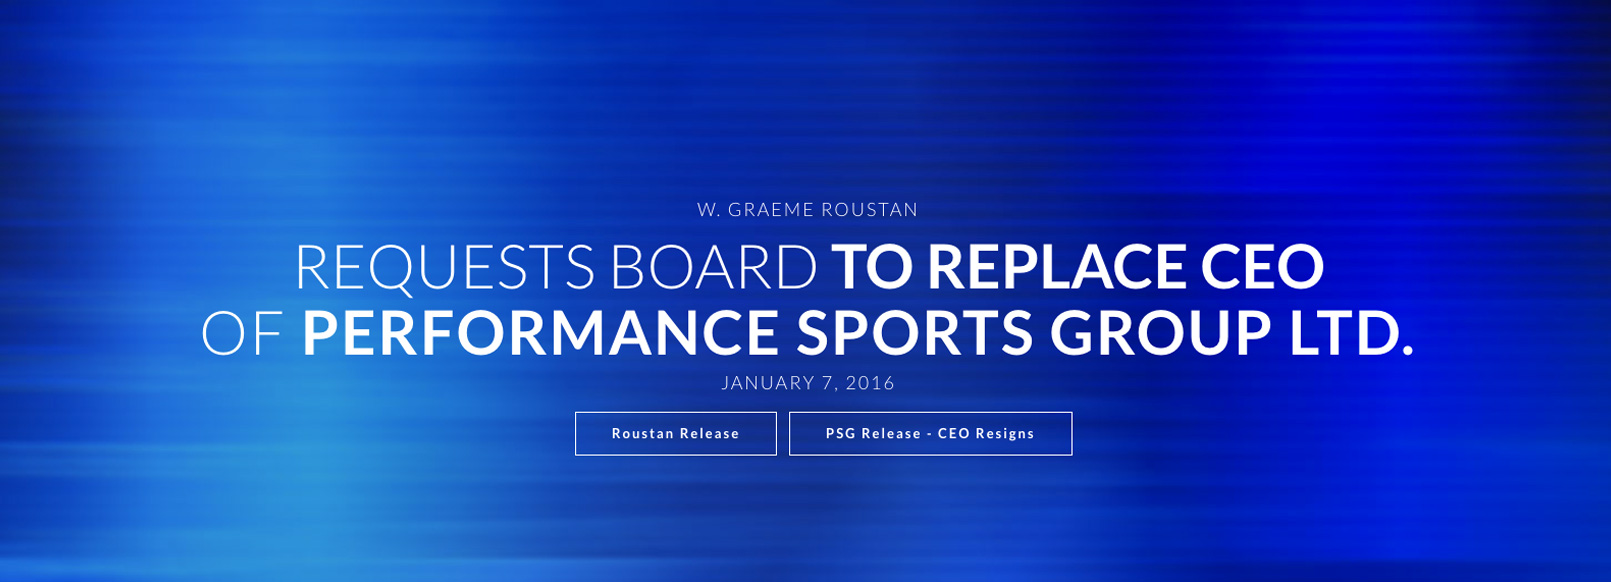 Home Page Sliders Roustan Requests Board to Replace CEO of PSG